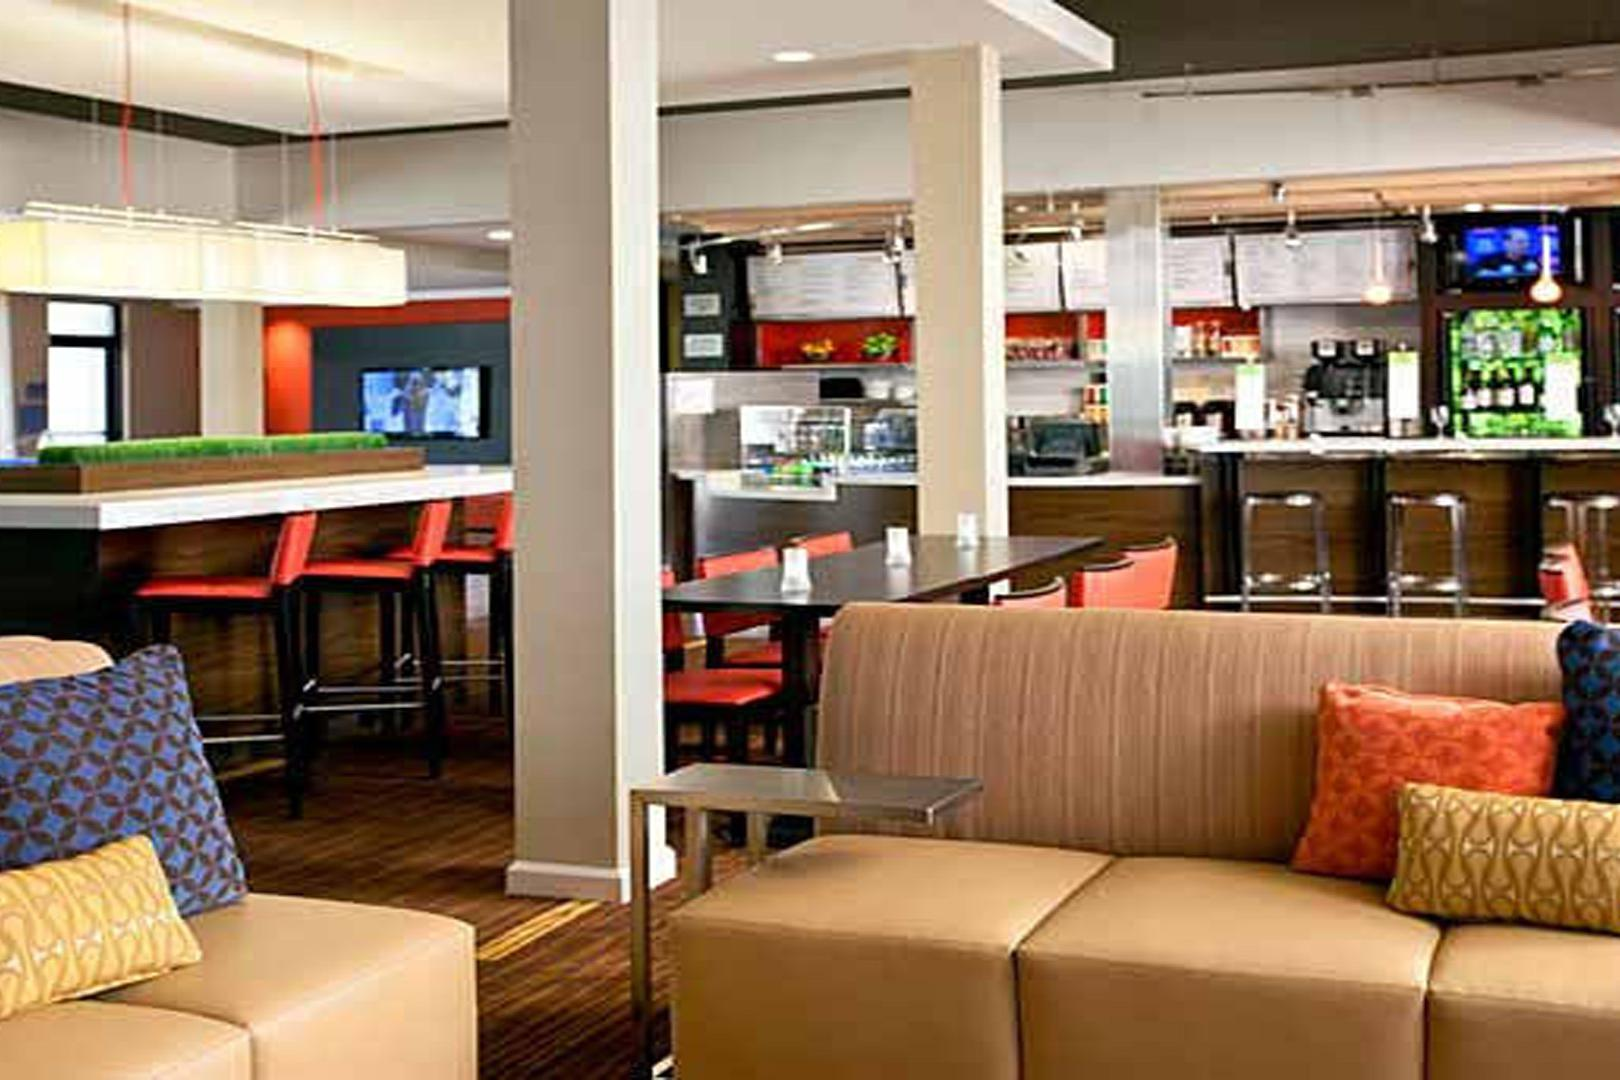 space at Courtyard by Marriott Fountain Valley